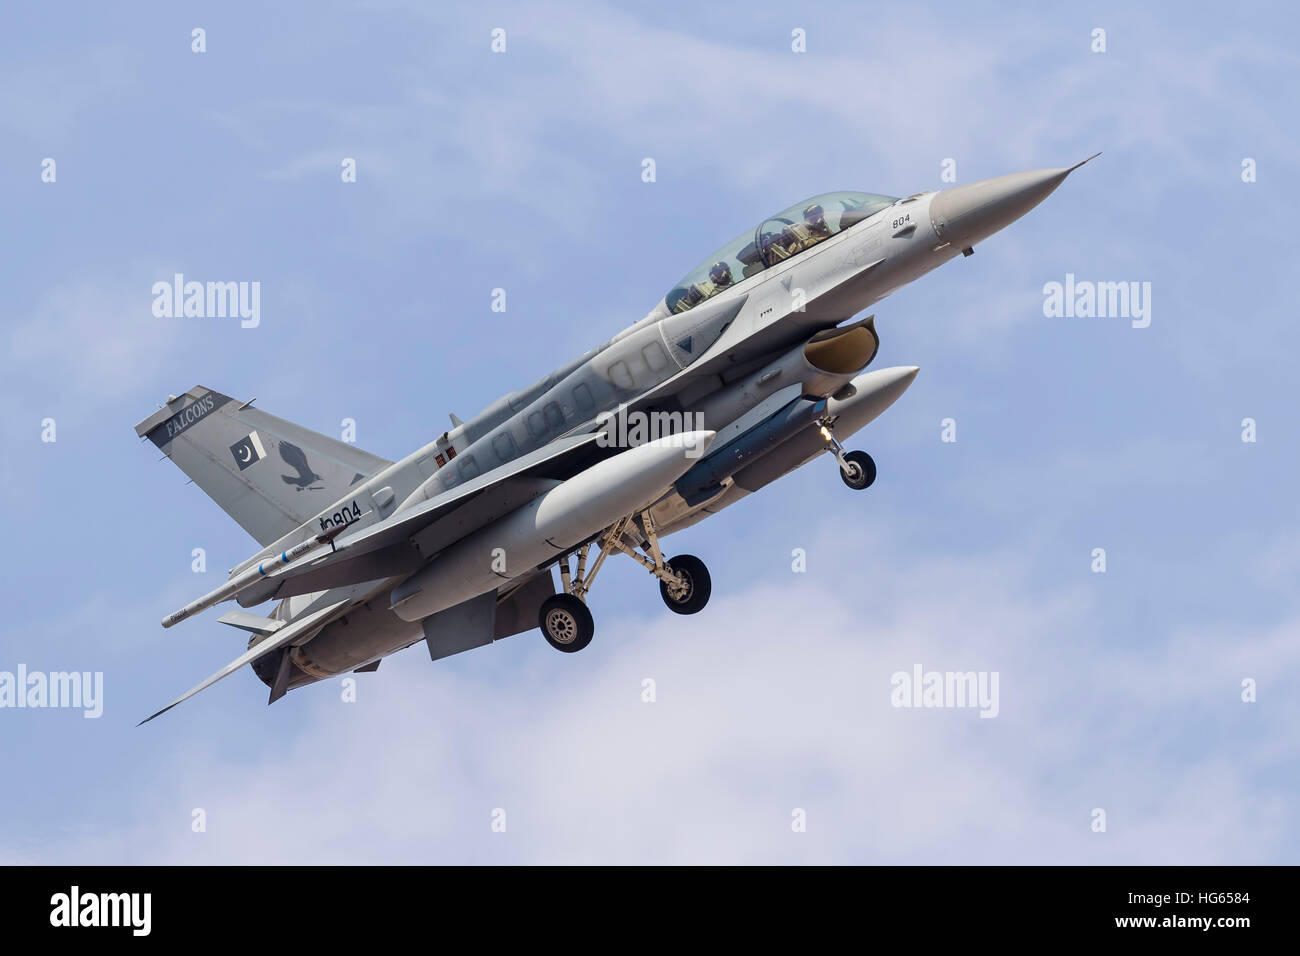 An F-16C of the Pakistan Air Force. - Stock Image